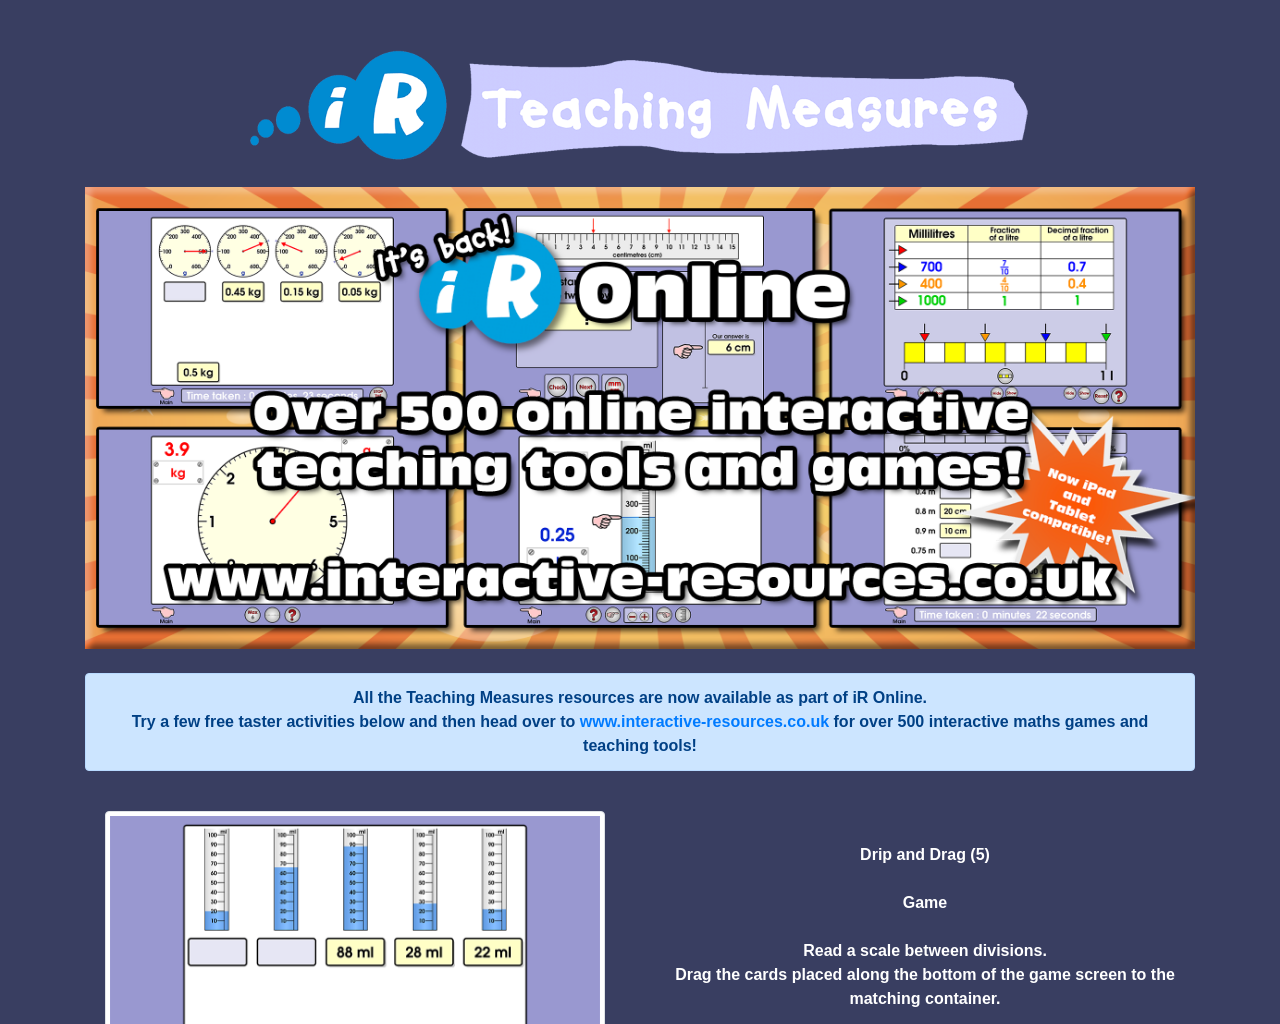 teachingmeasures.co.uk